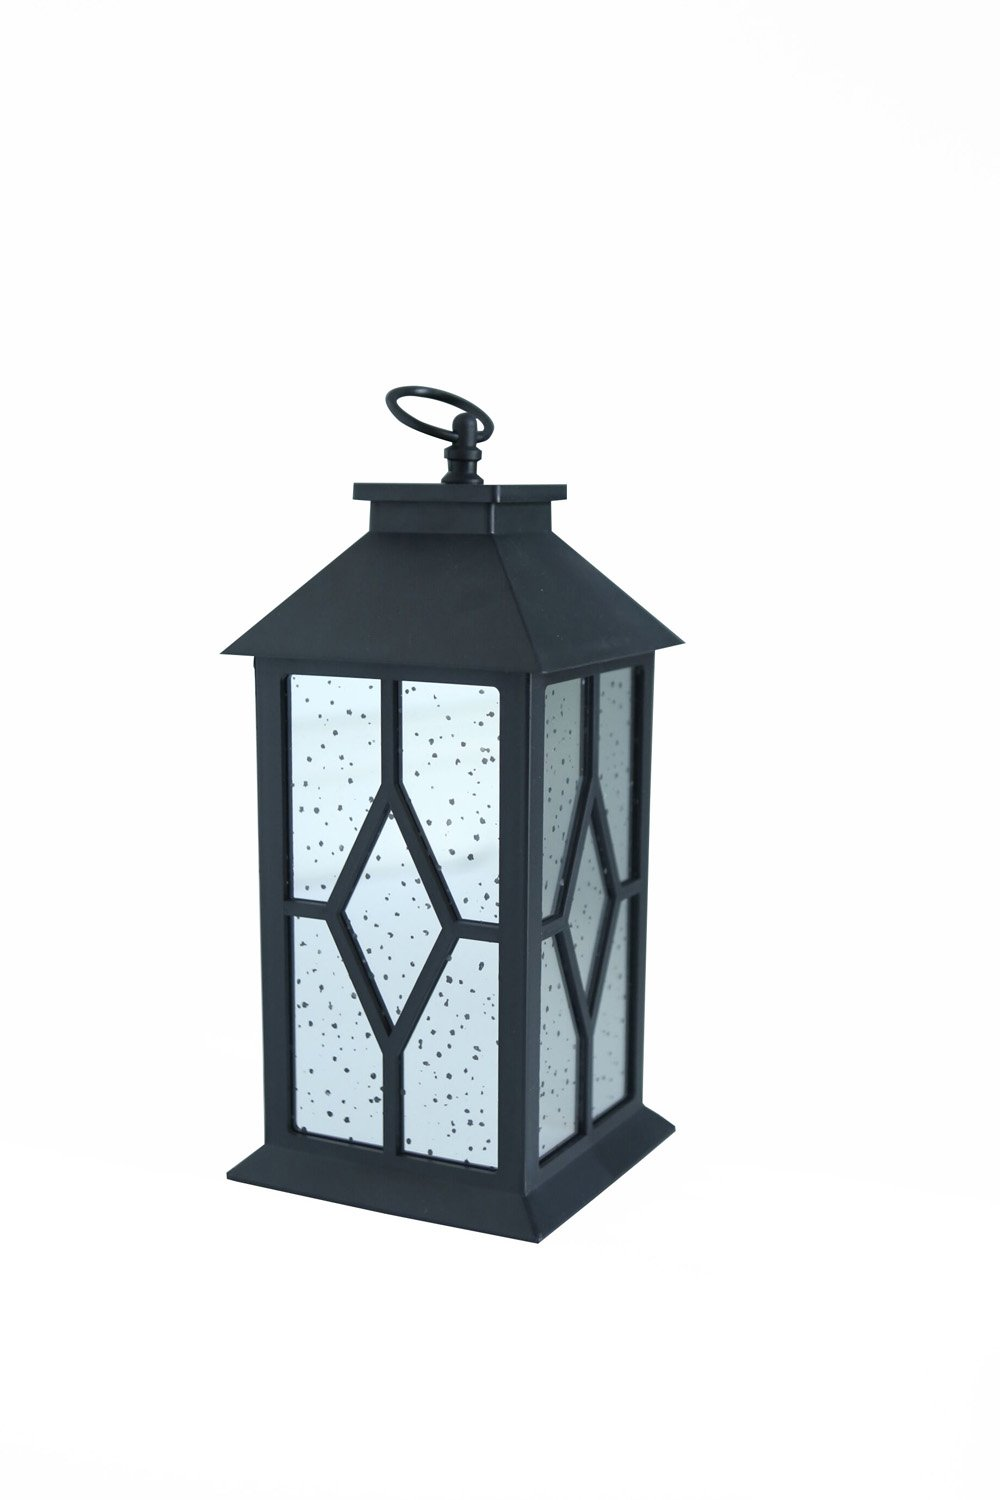 YaCool Decorative Garden Lantern - Vintage Style Hanging Lanterns Outdoor Lighting Garden Light - Battery-Operated 6 Hour Timer- 12' (016)